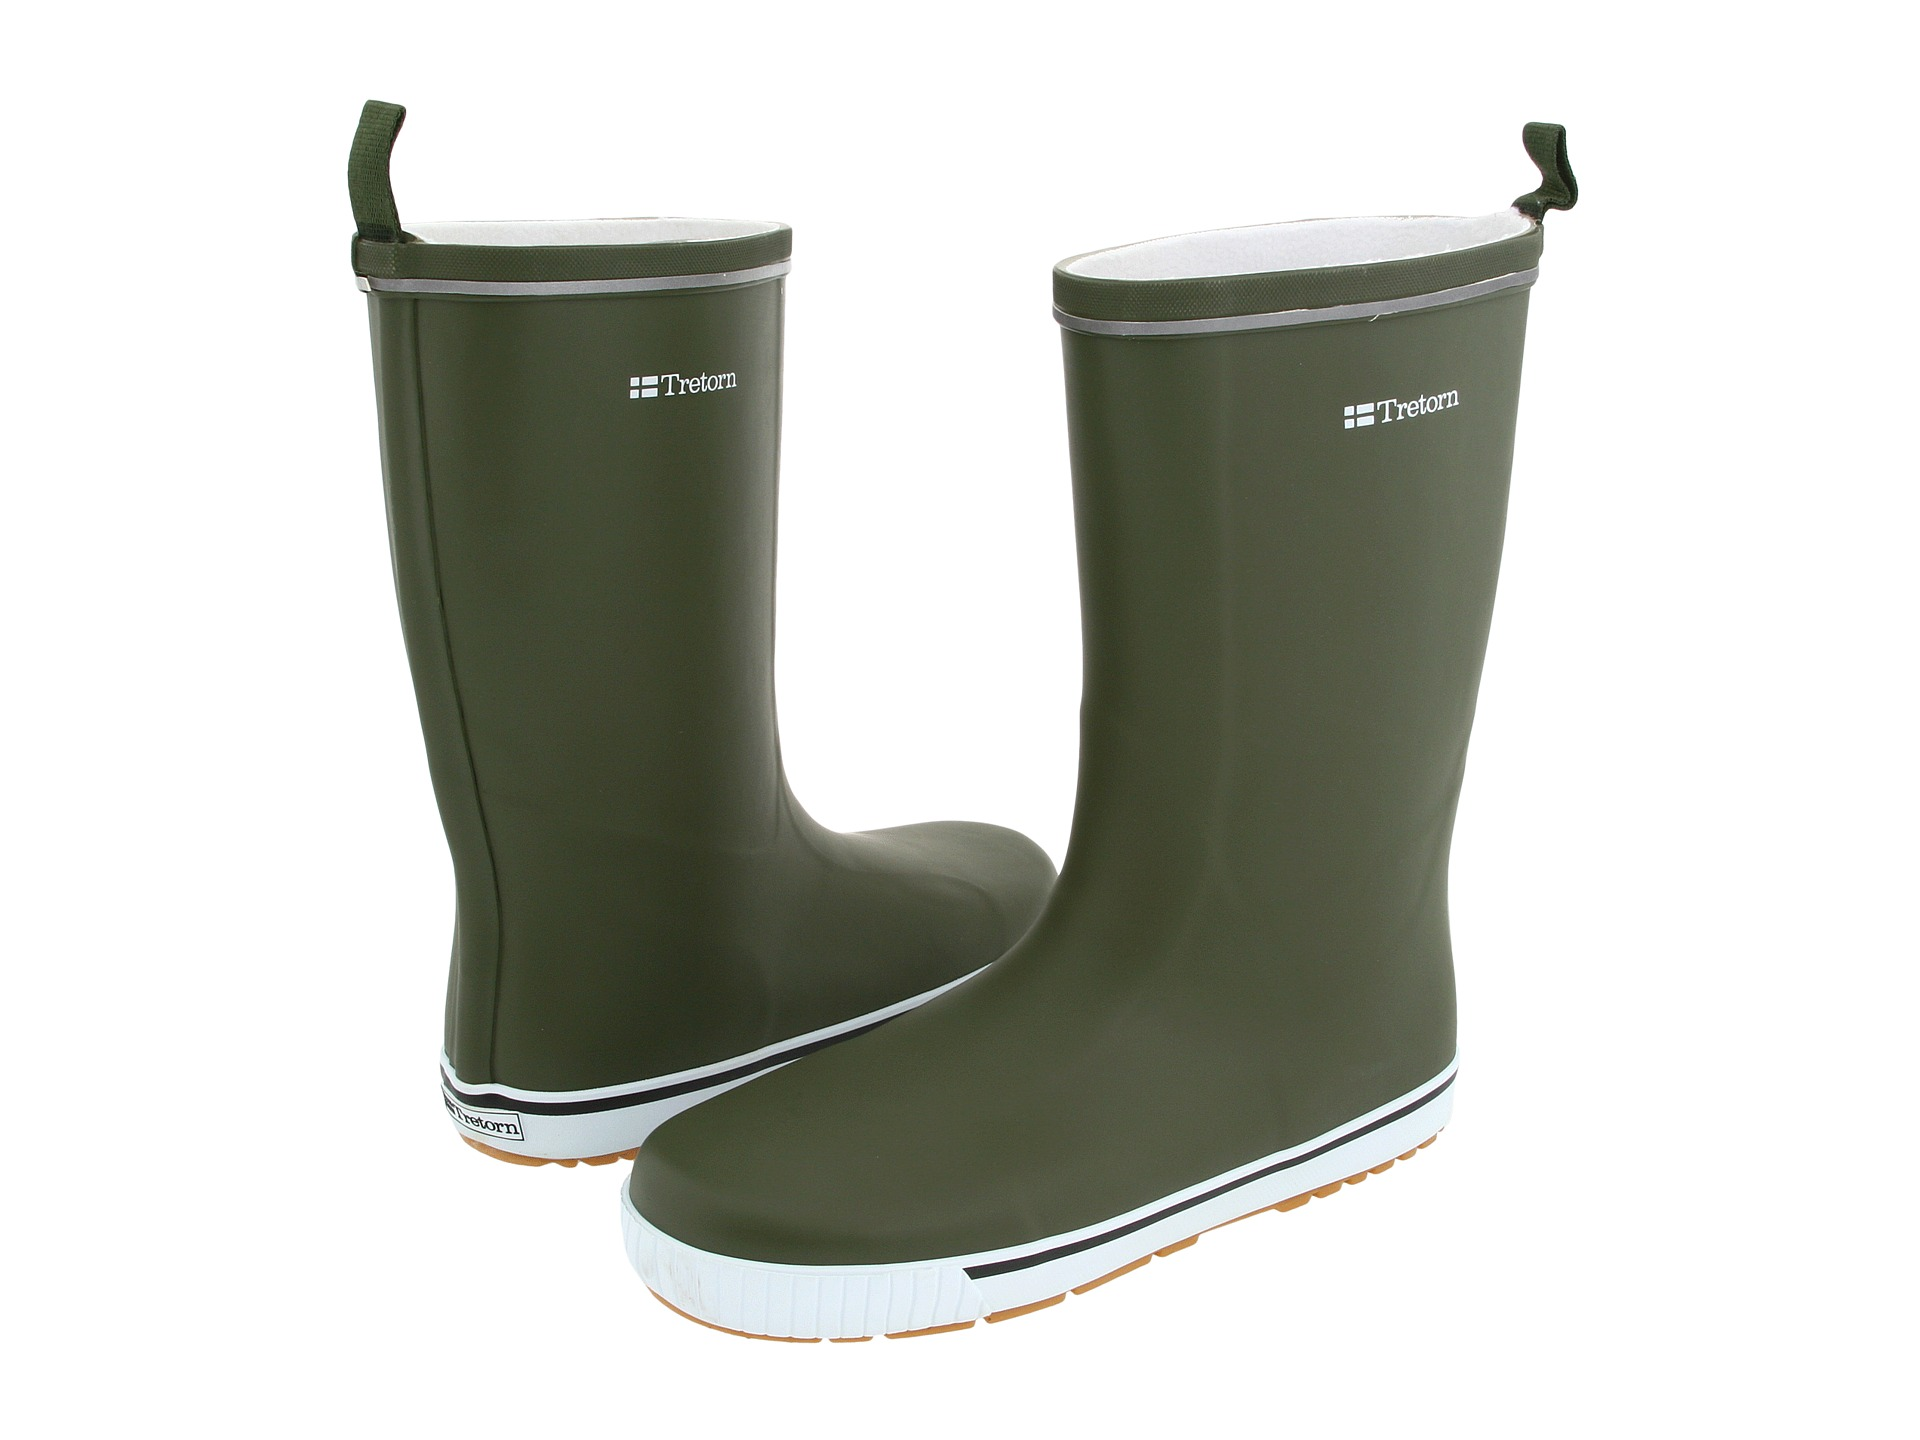 Welcome to Tretorn's official Online Shop. Enjoy everyday life outside with rubber boots, sneakers, outerwear, tennis gear & more. Shop online today!